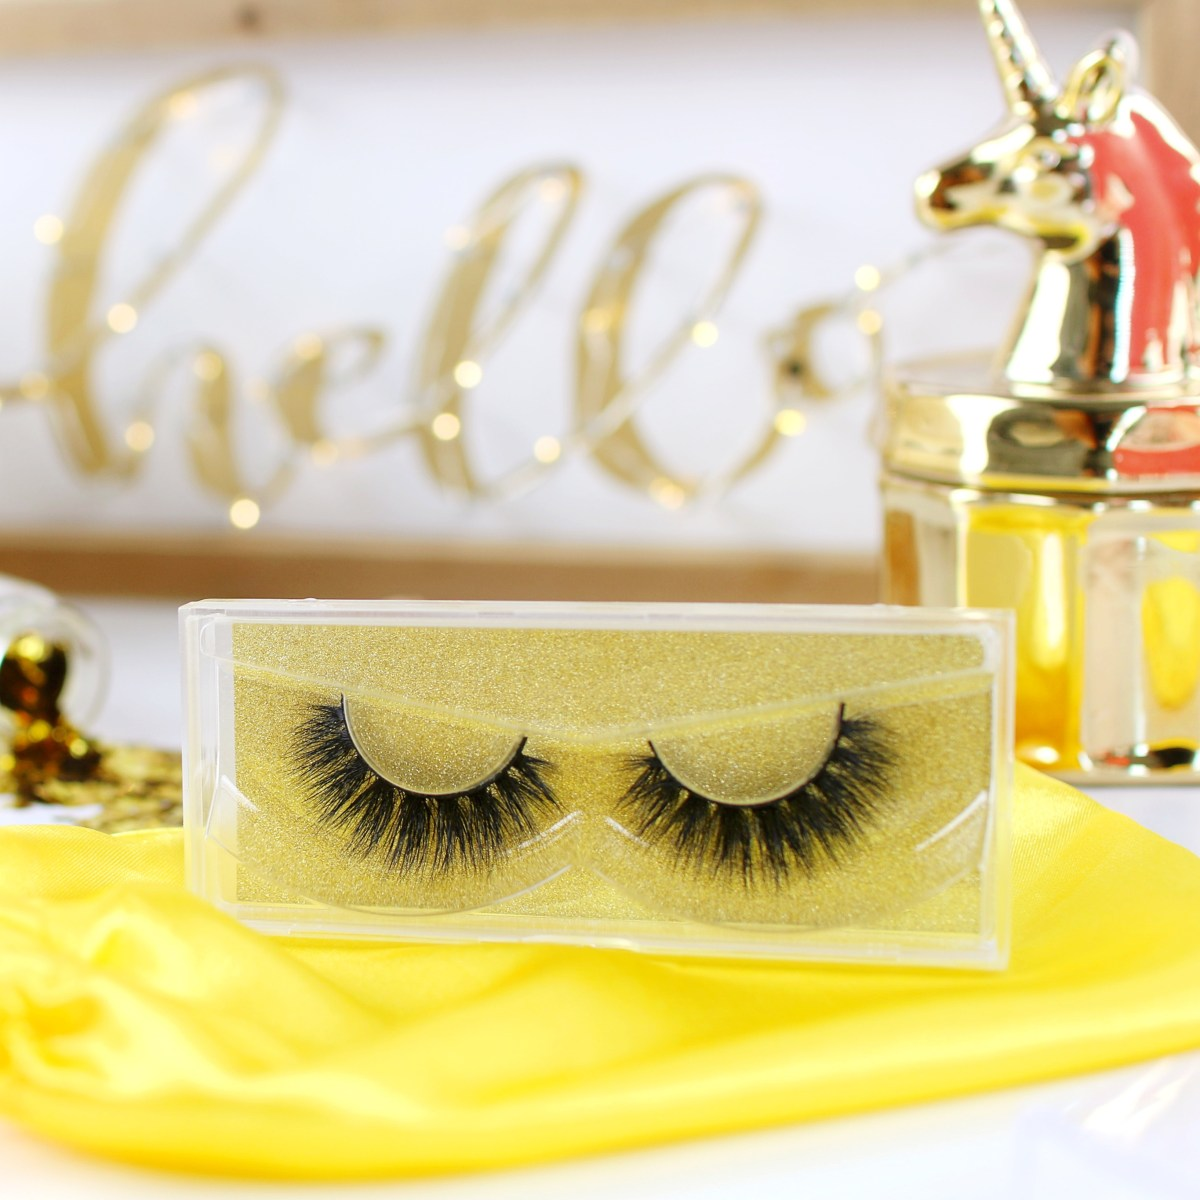 Private Label Mink Lashes - Private Label Extensions Review!